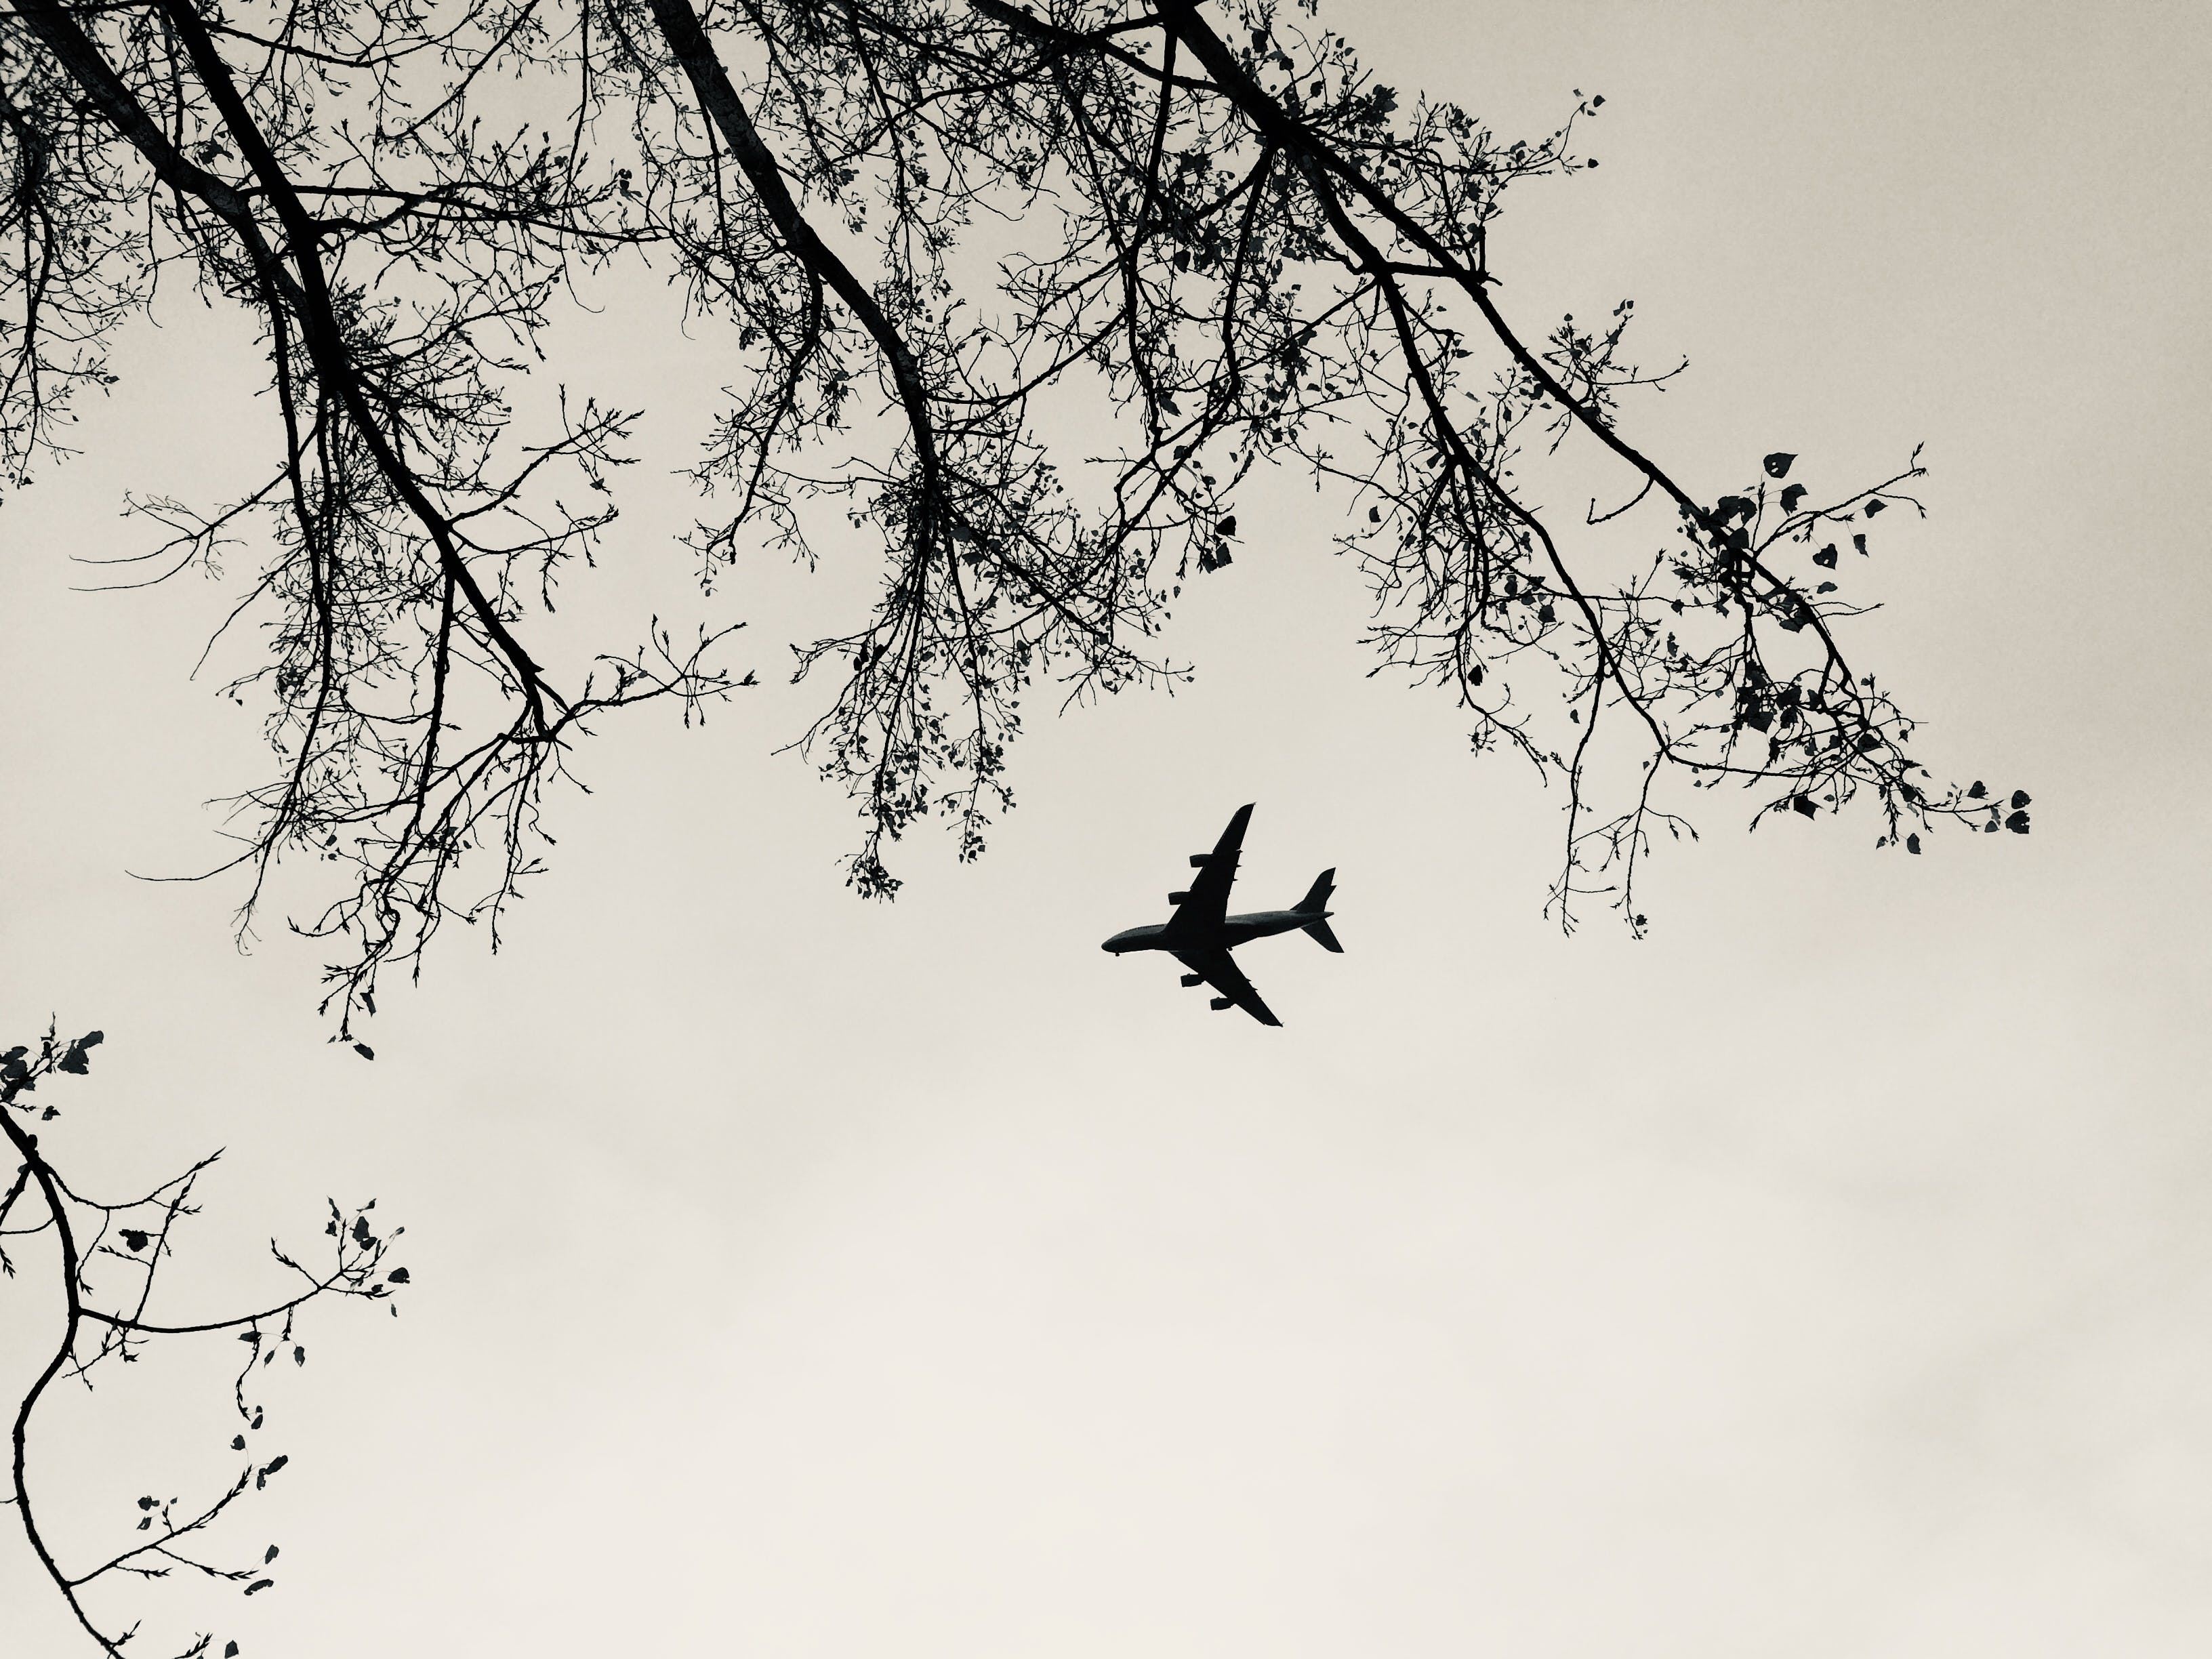 Free stock photo of airplane, black and white